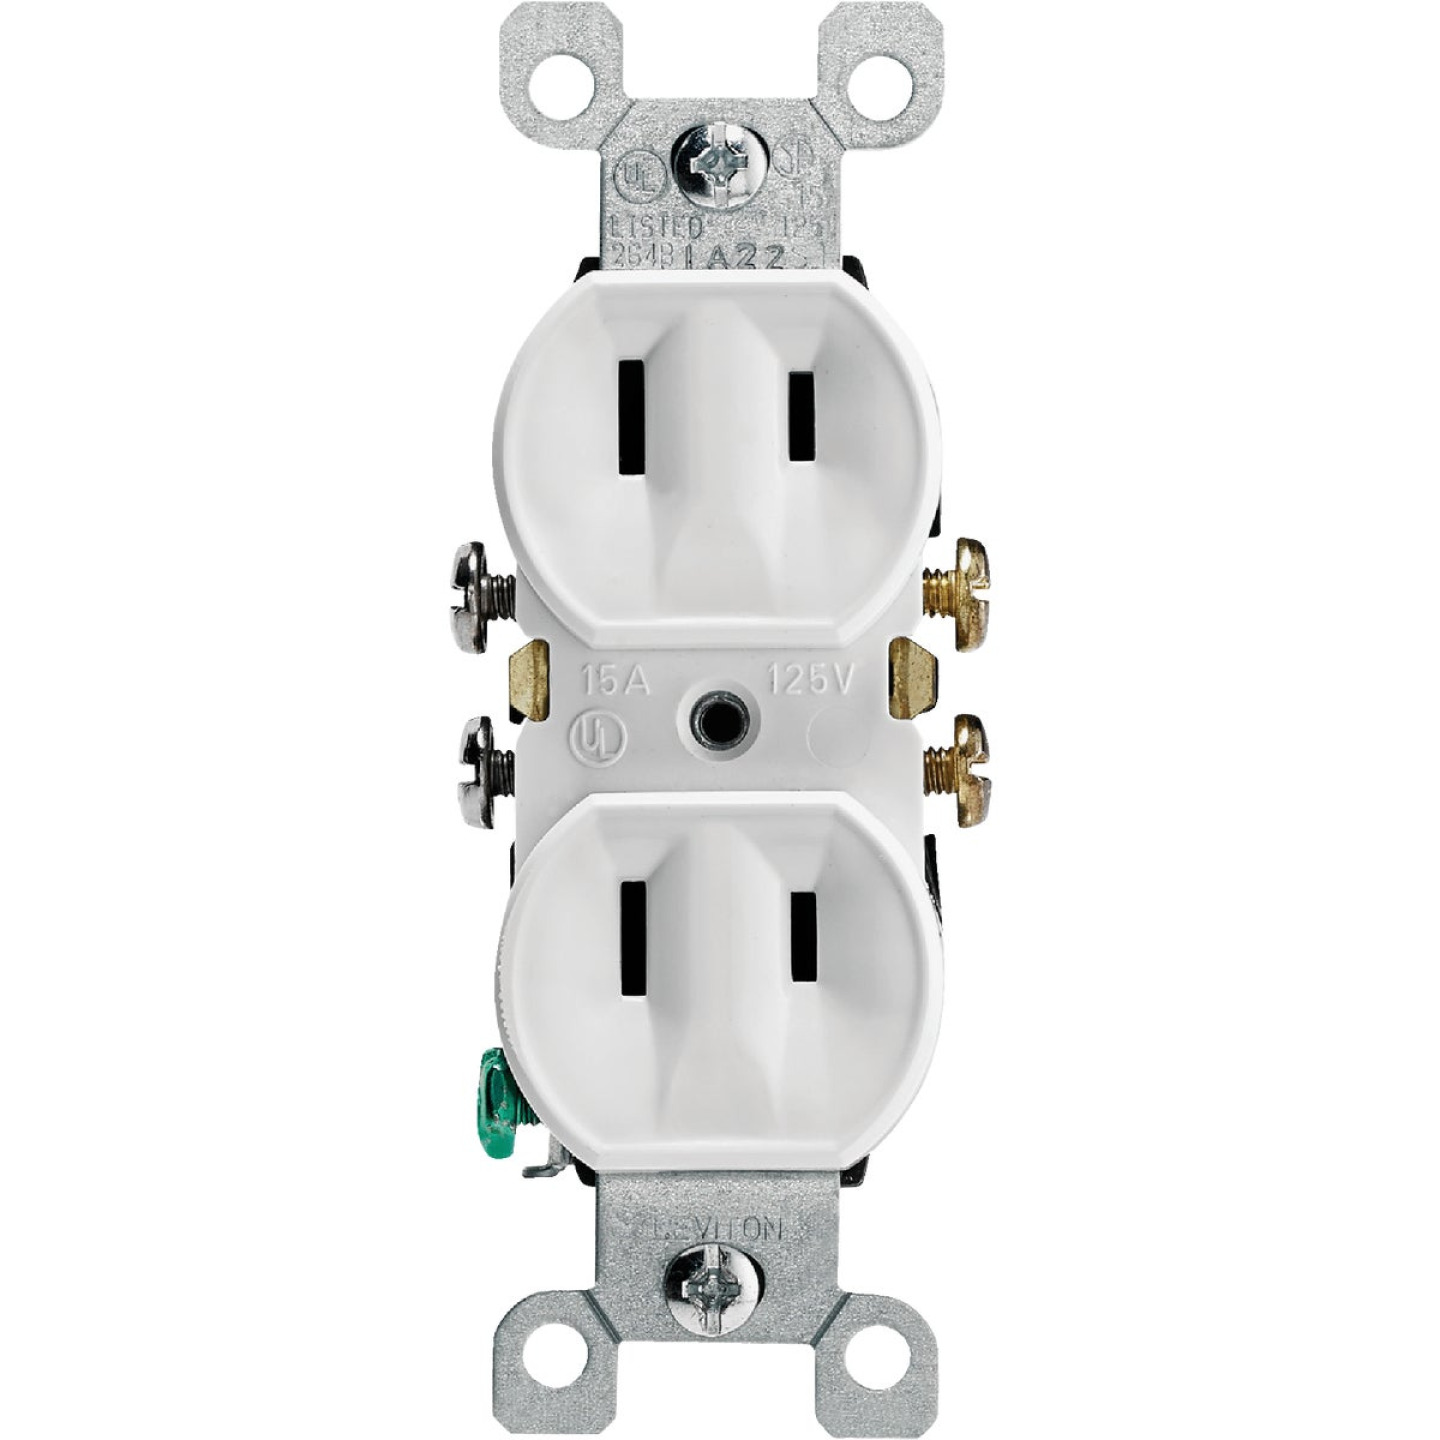 Leviton 15A White Residential Grade 1-15R Duplex Outlet Image 2